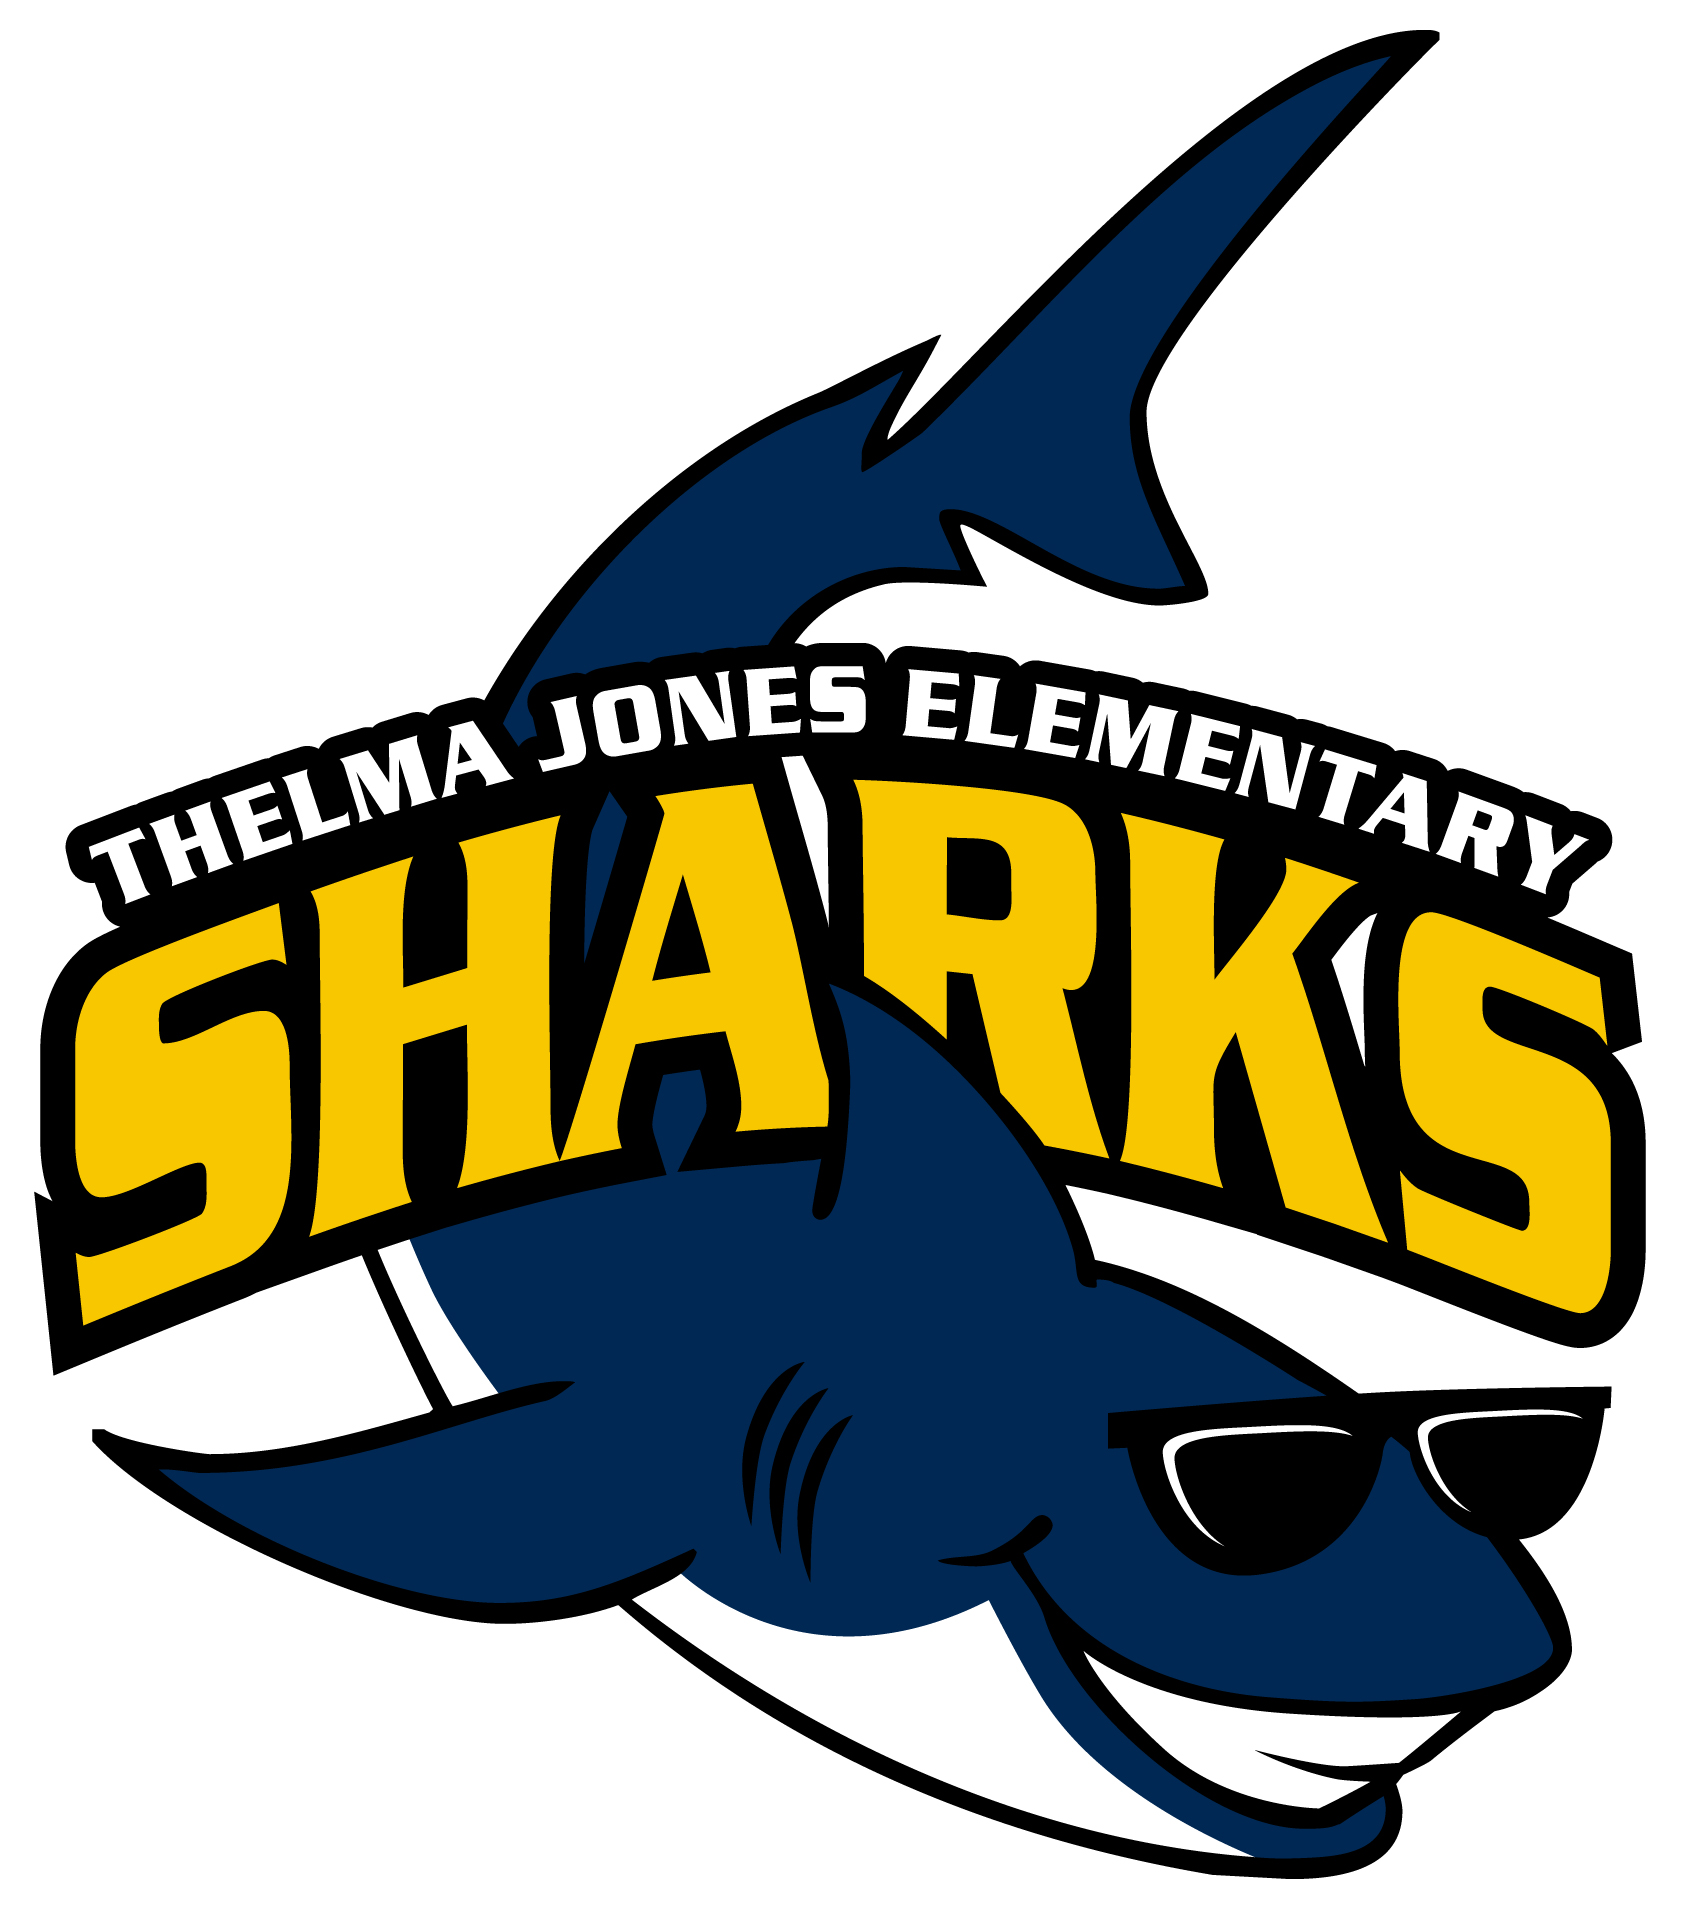 Thelma Jones Elementary Sharks Logo